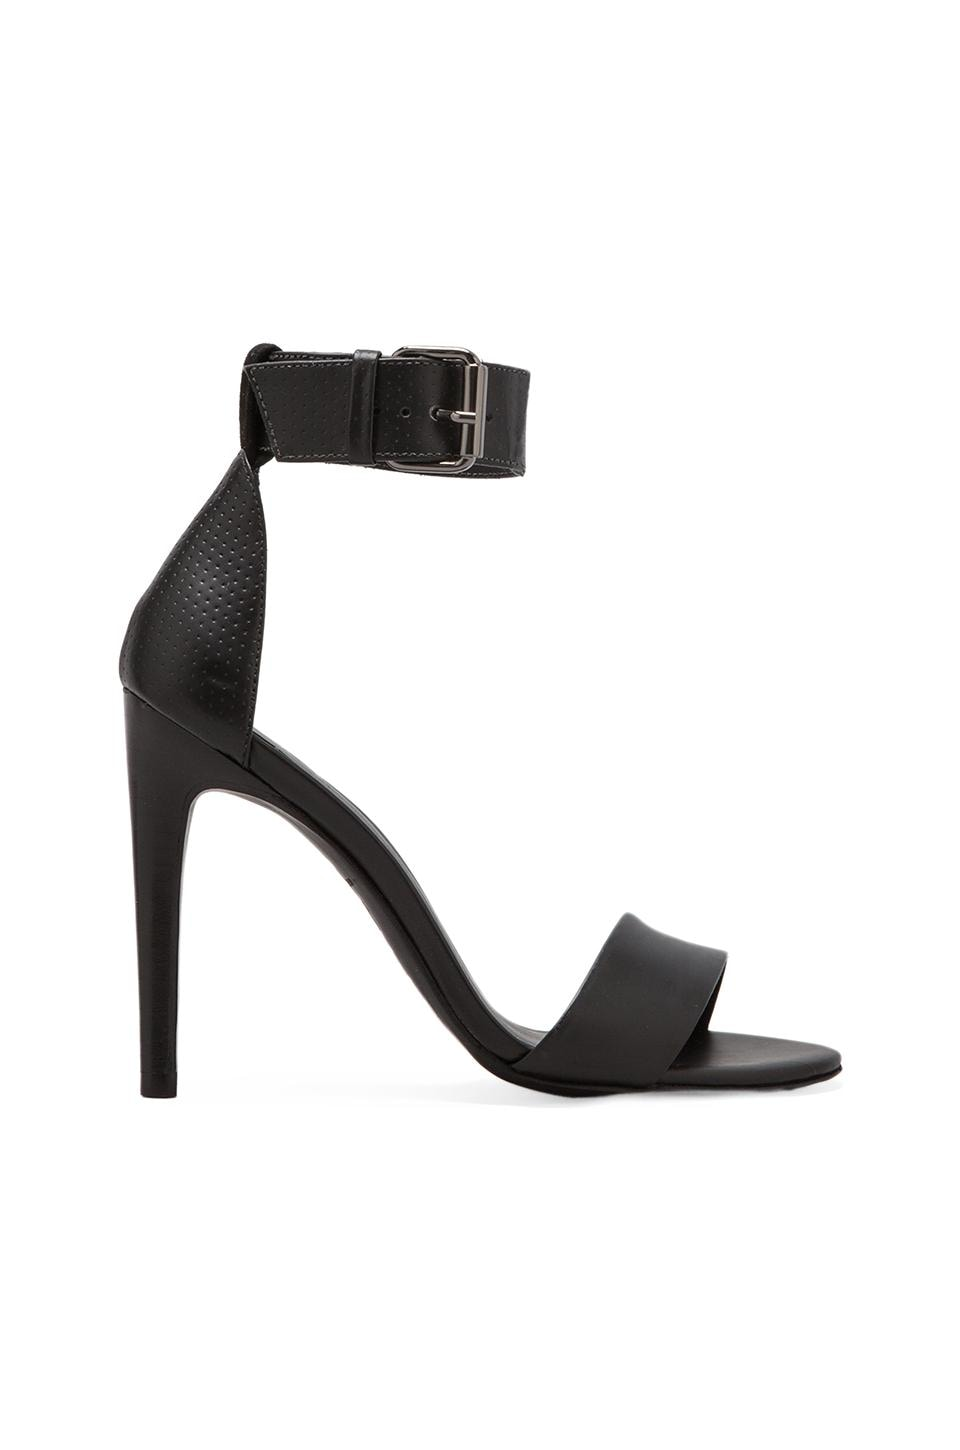 Tibi Carine in Black